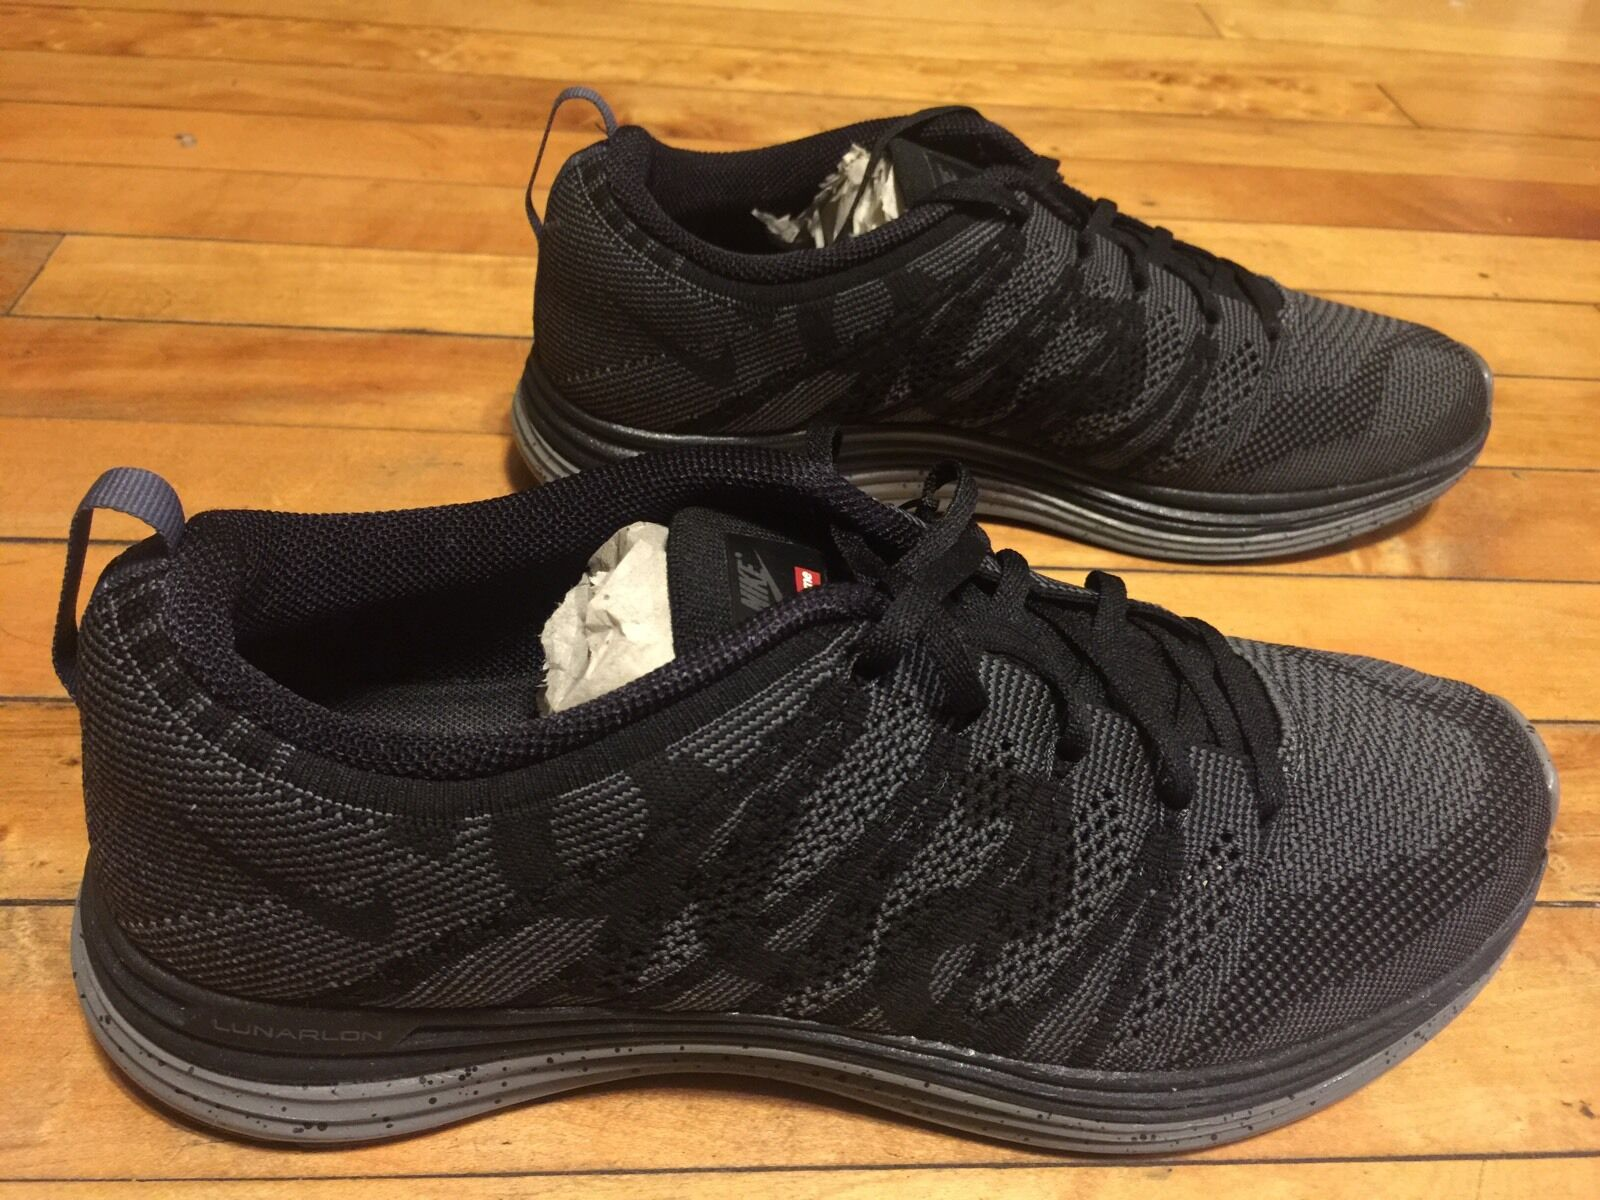 NIKE FLYKNIT LUNAR1 + SUPREME 623823-001 SIZE 9 SOLD OUT LMTD MULTI-COLOR Special limited time